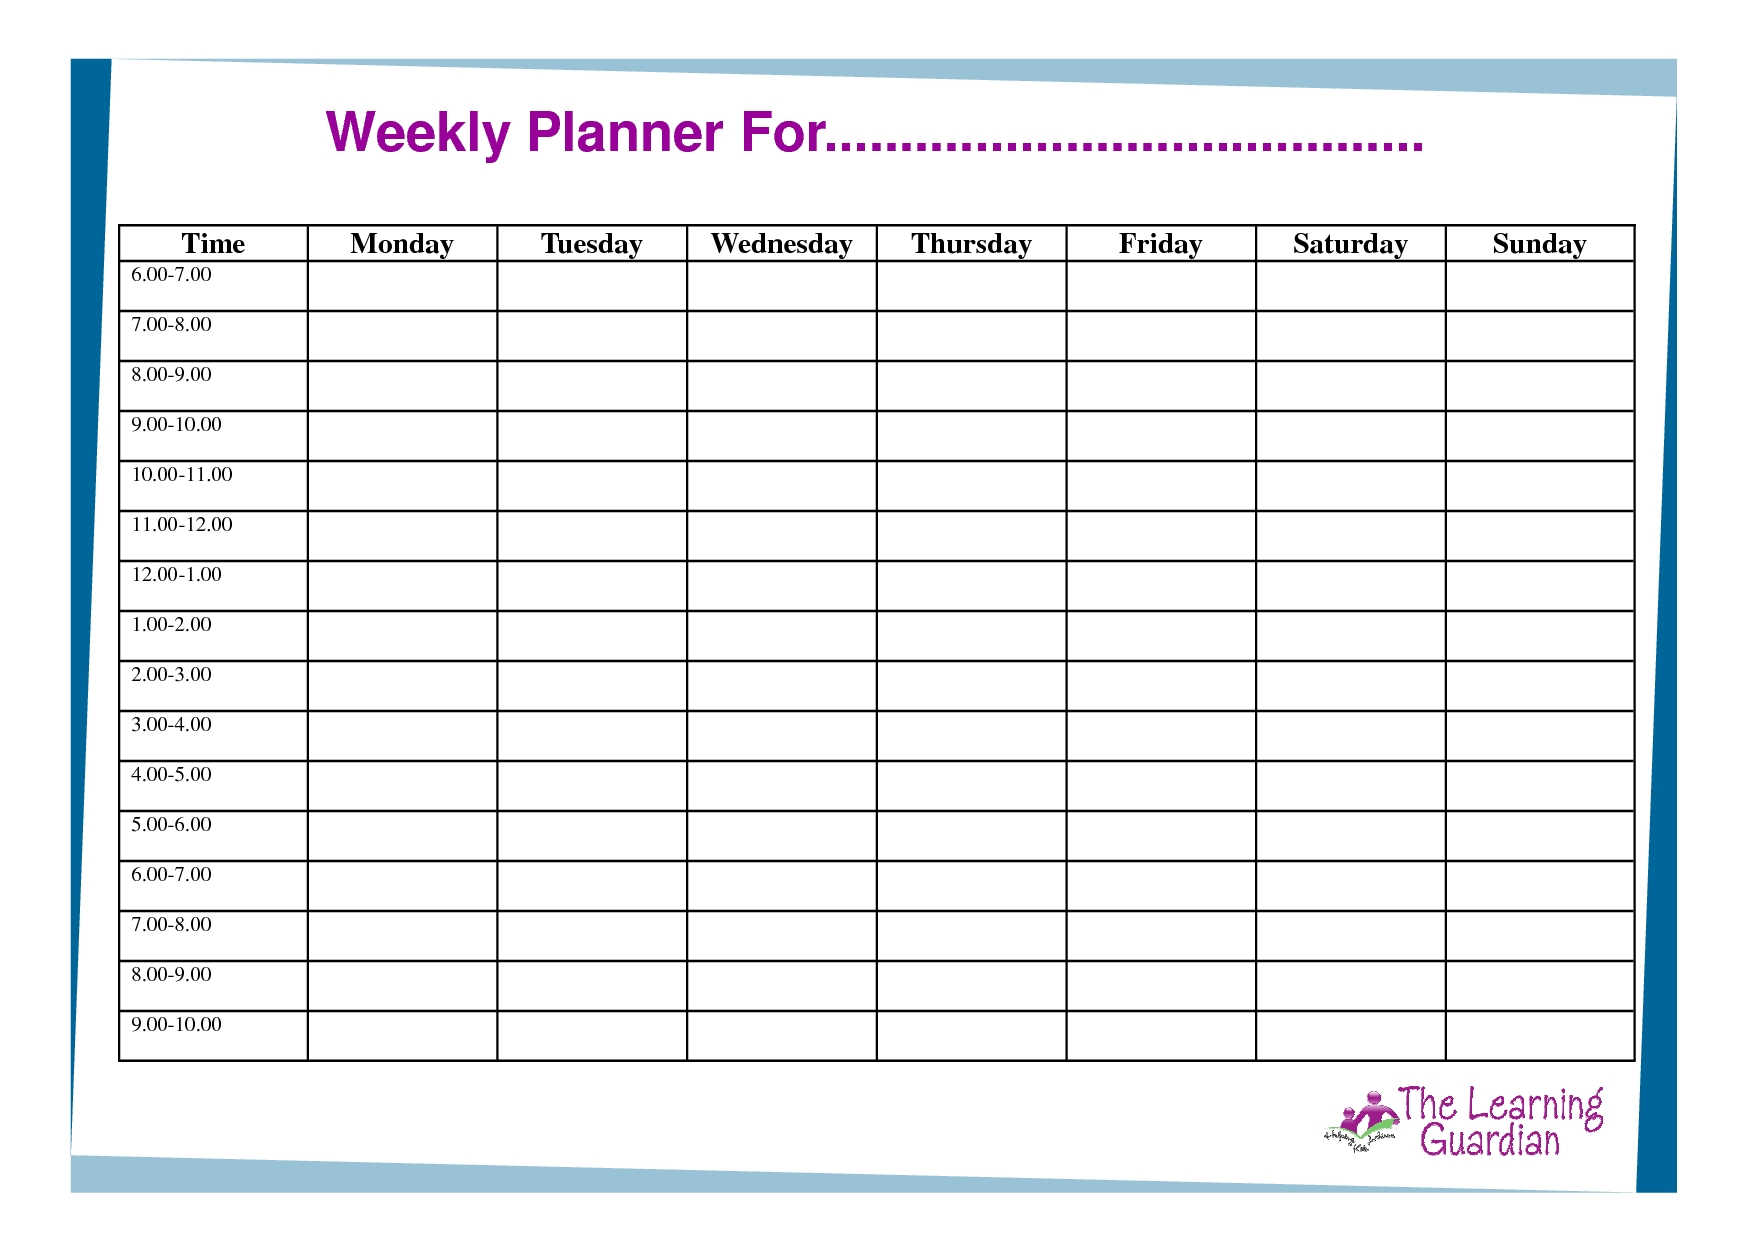 Schedule Template Free Printable Weekly Calendar Templates Planner  Free Blank Printable Weekly Calendar Template